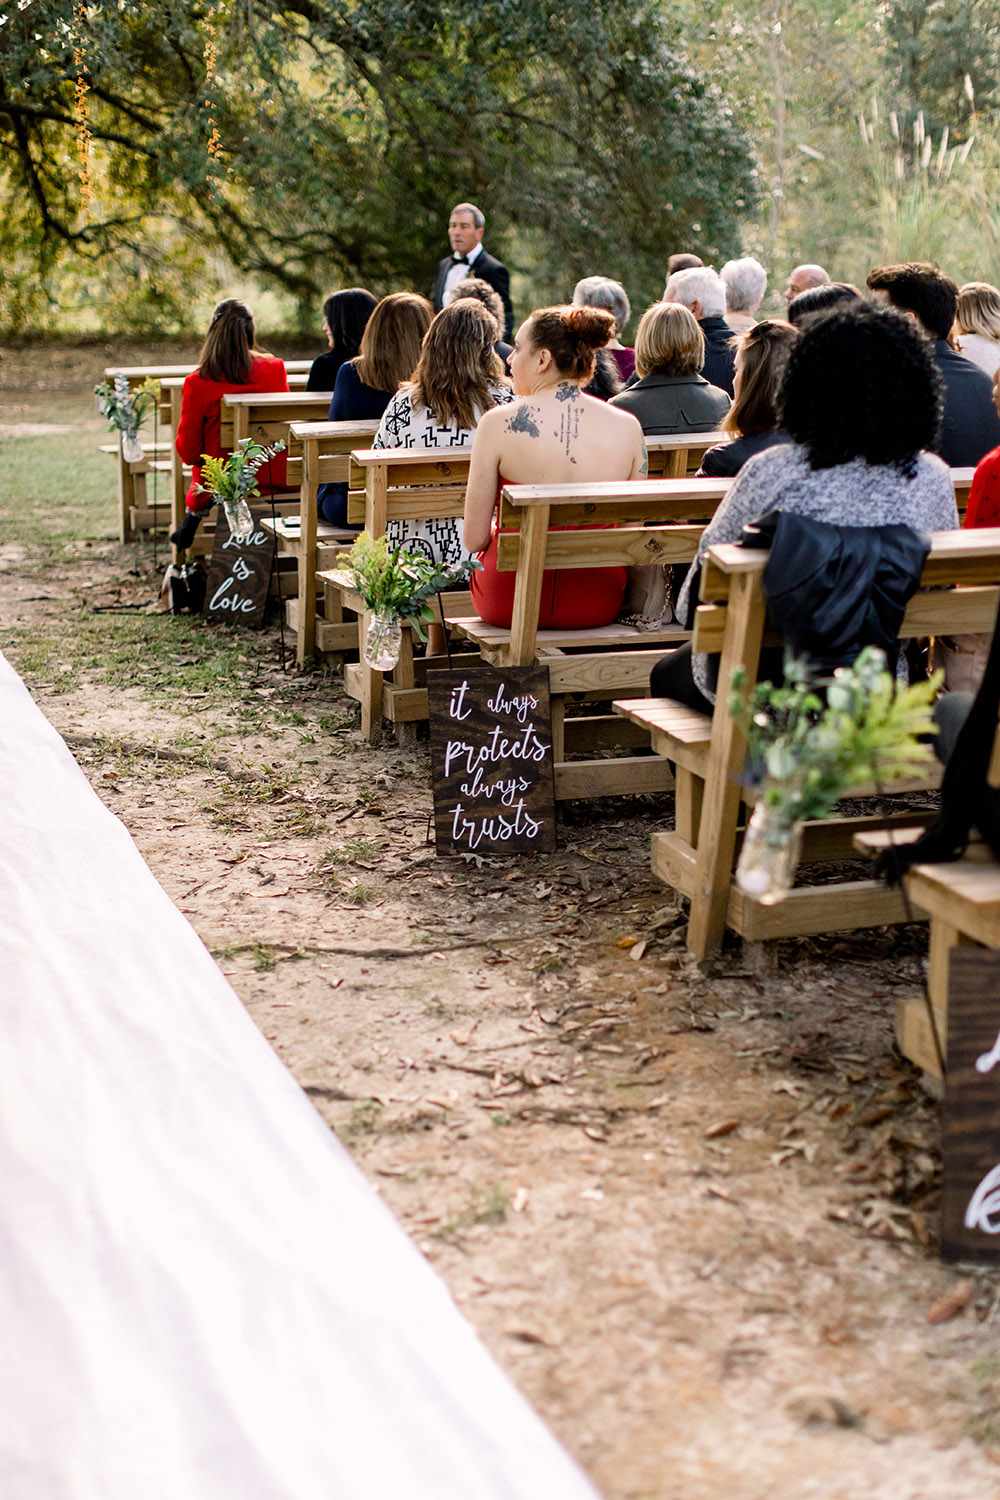 the wedding aisle lined with signs 1 Corinthians 13